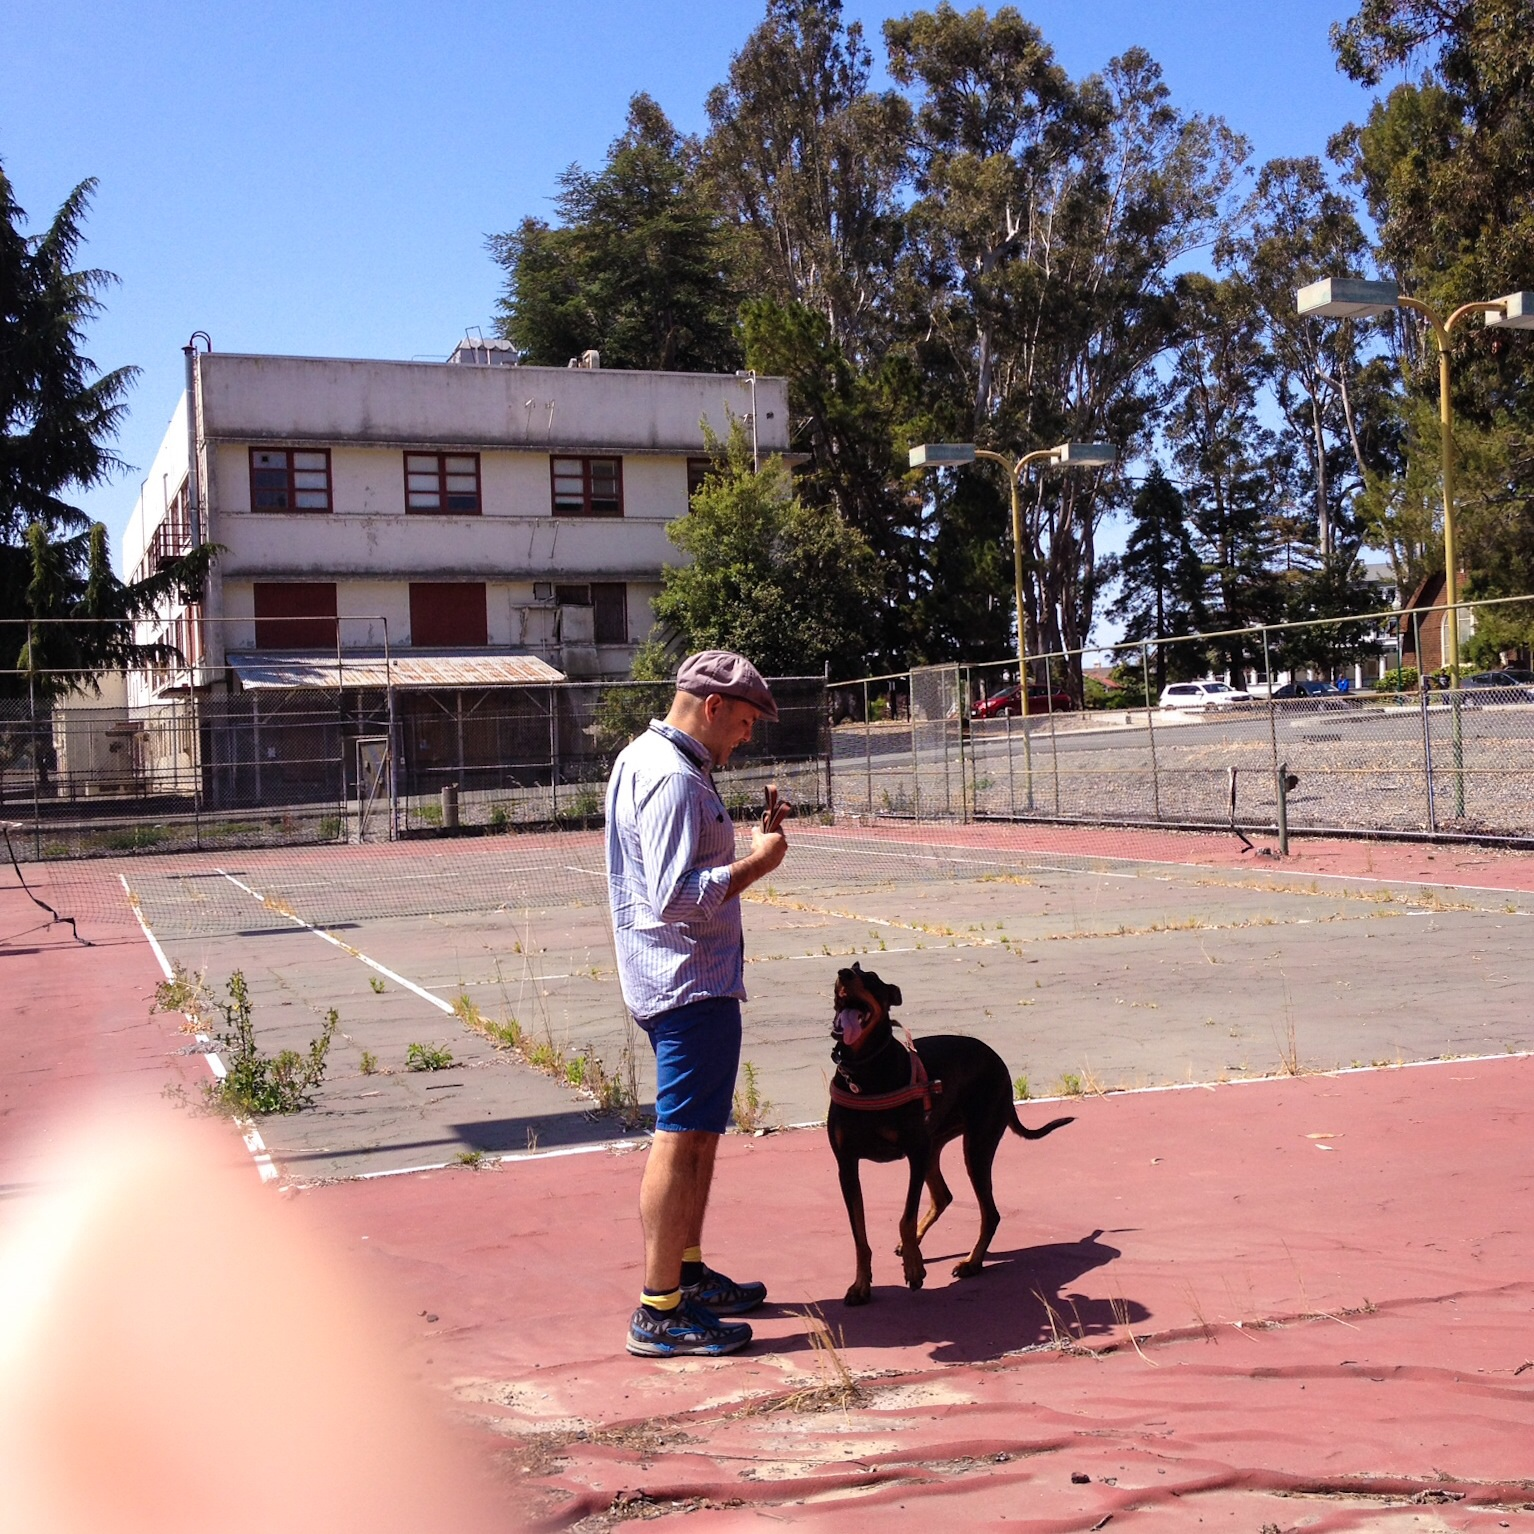 Chloe and Albert on Abandoned Tennis Court; Mare Island, CA